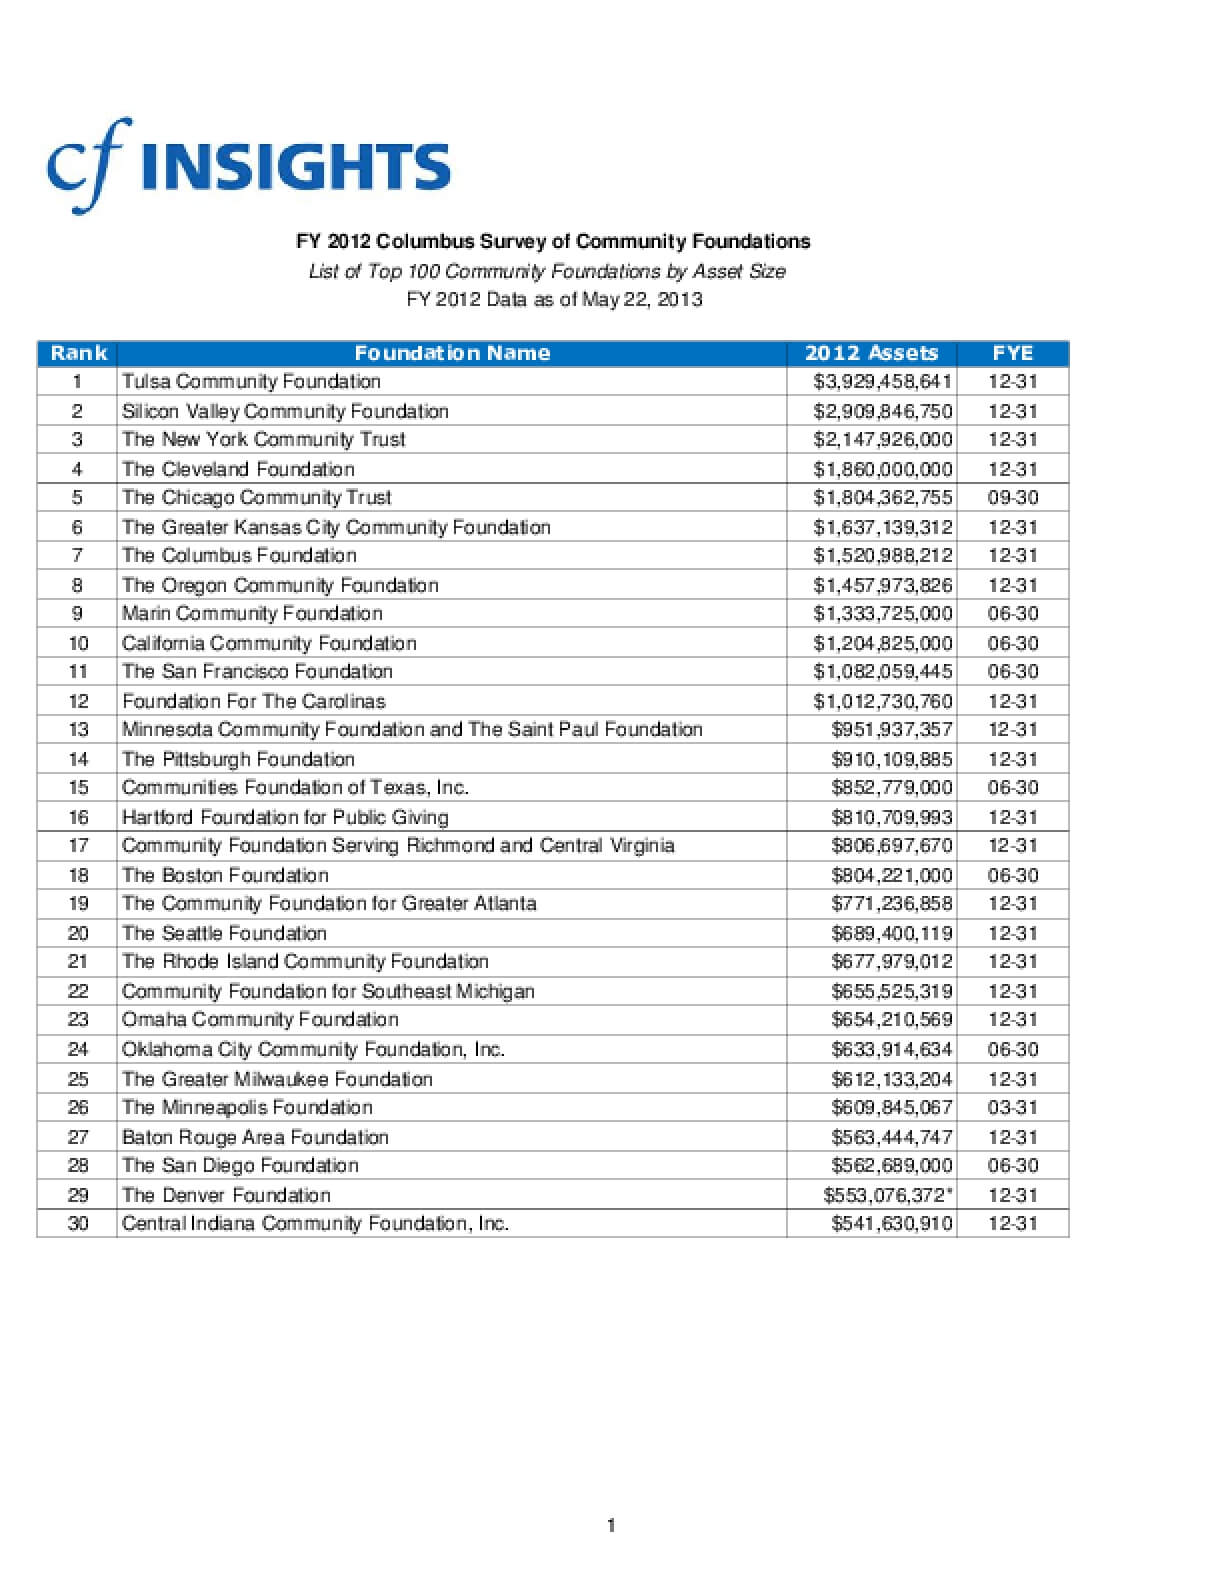 2012 Columbus Survey of Community Foundations: List of Top 100 Community Foundations by Asset Size